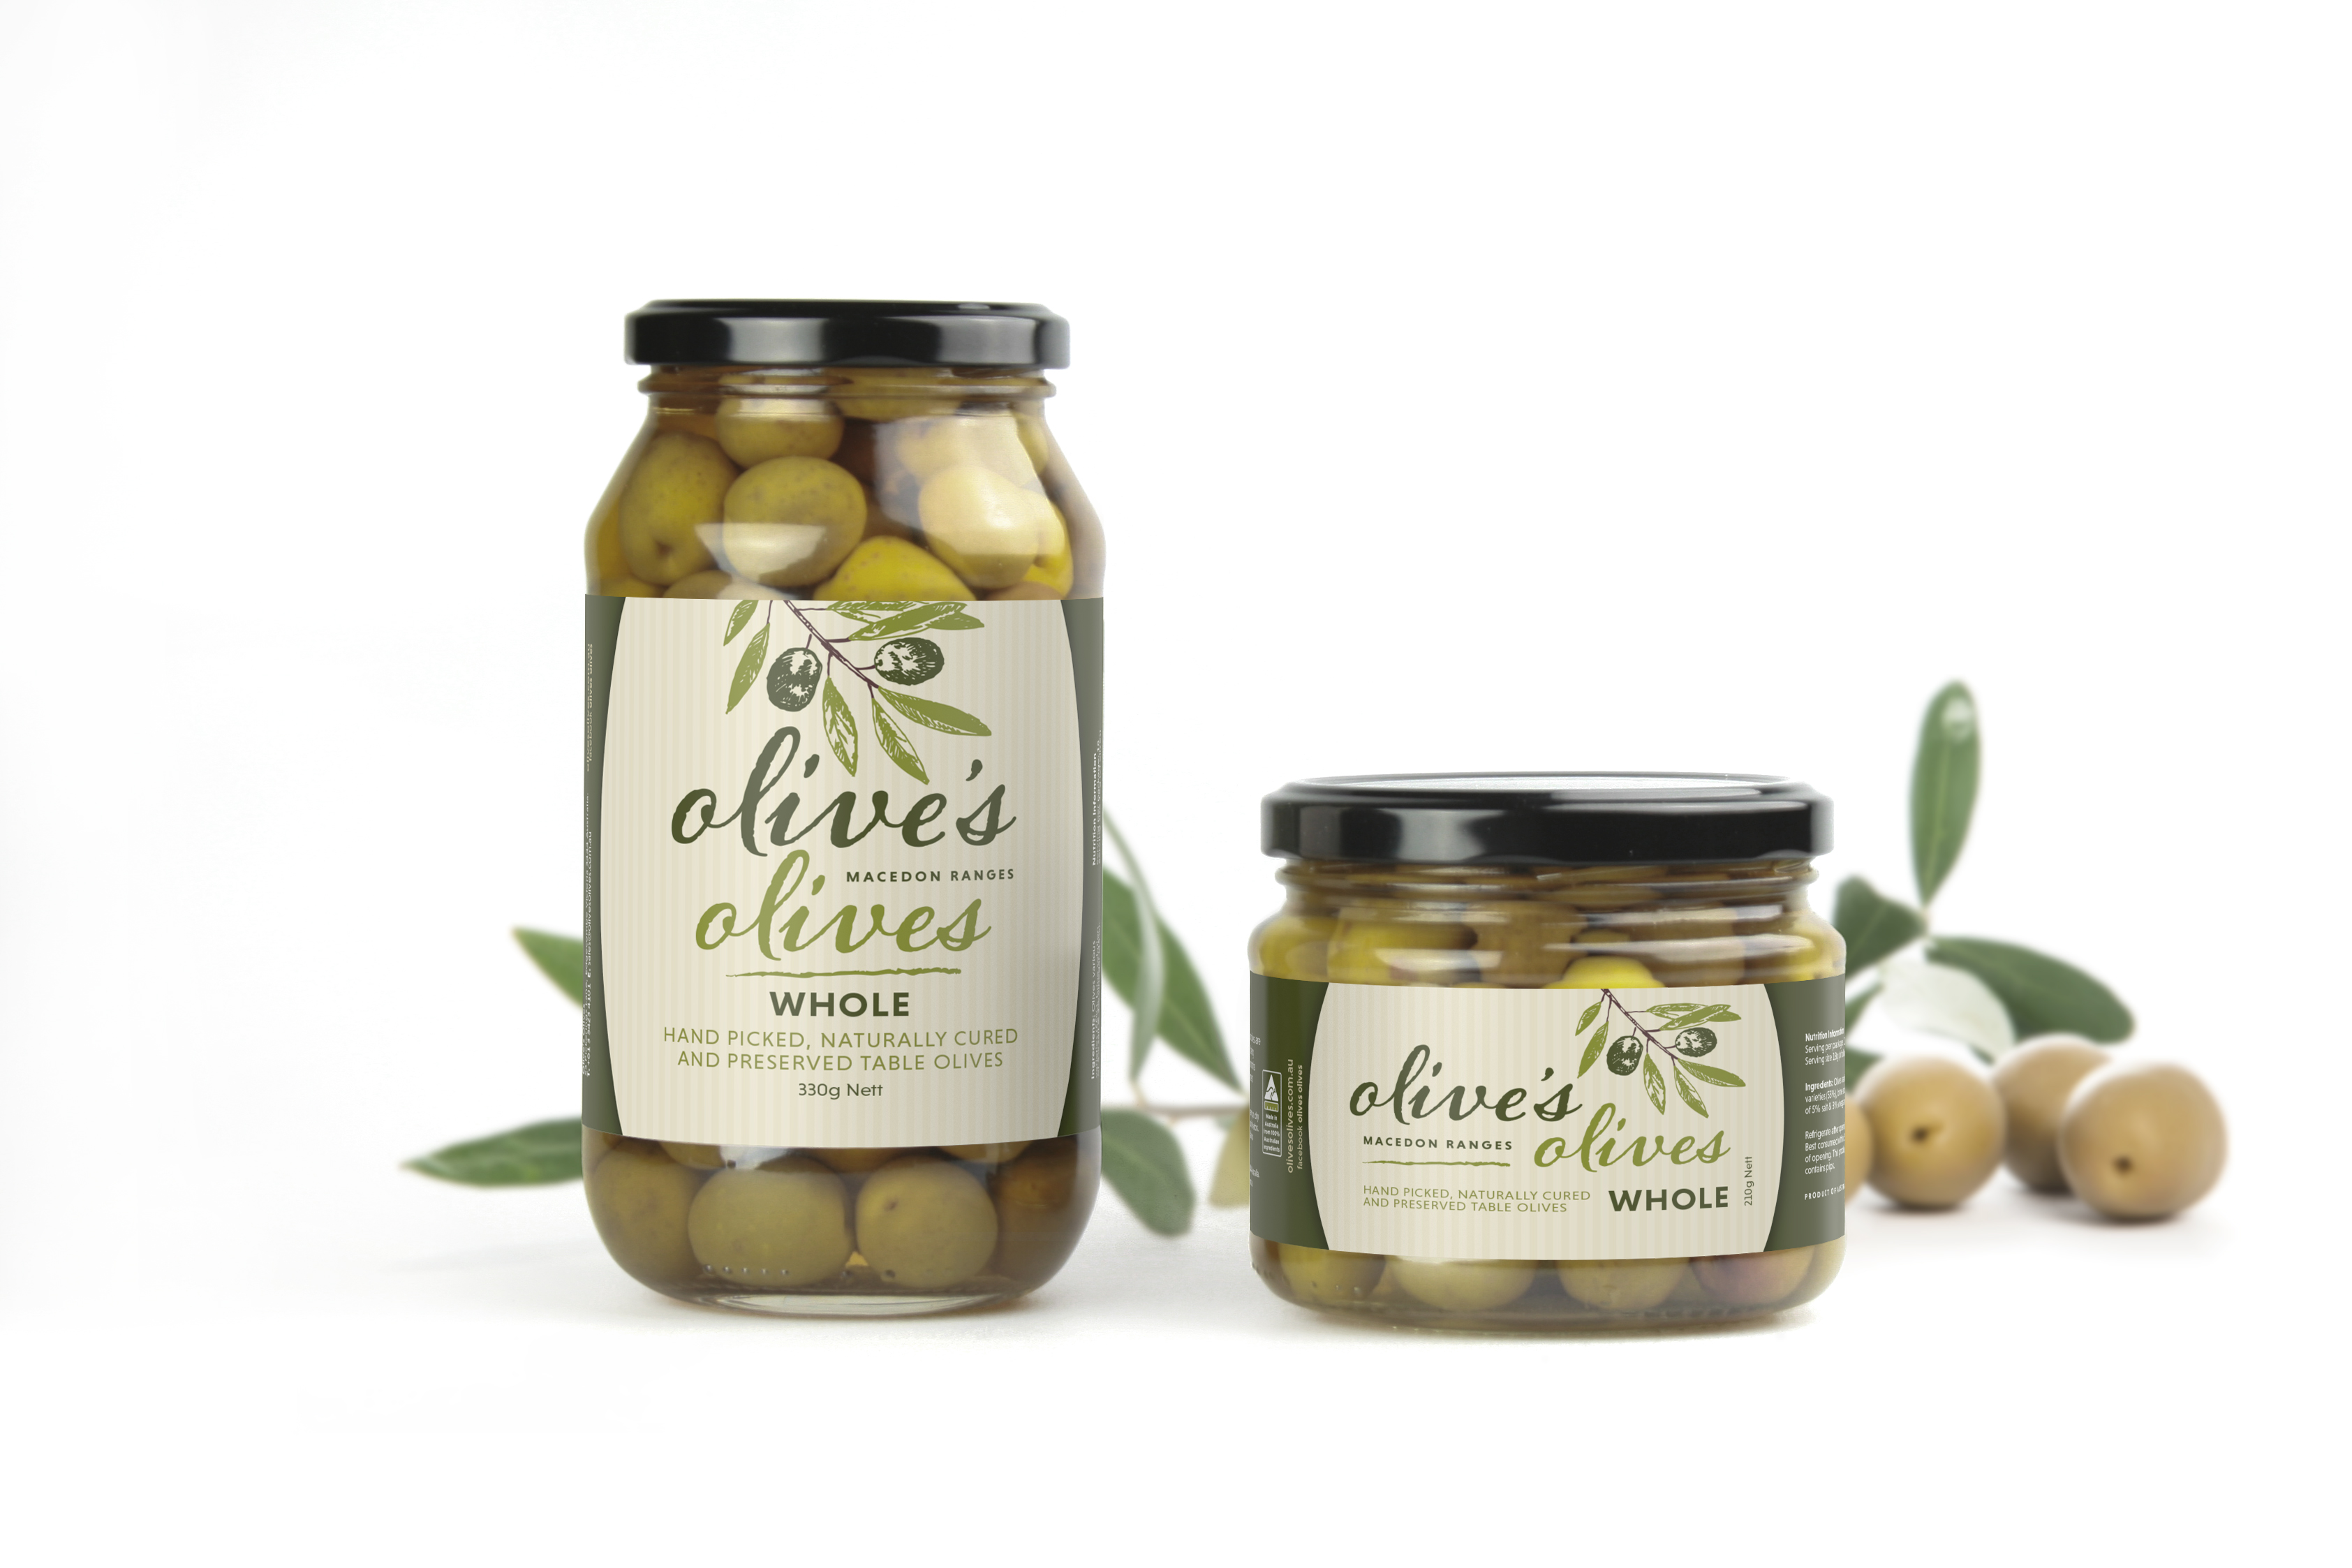 Olives in bottles 210 g & 320g bottle sizes